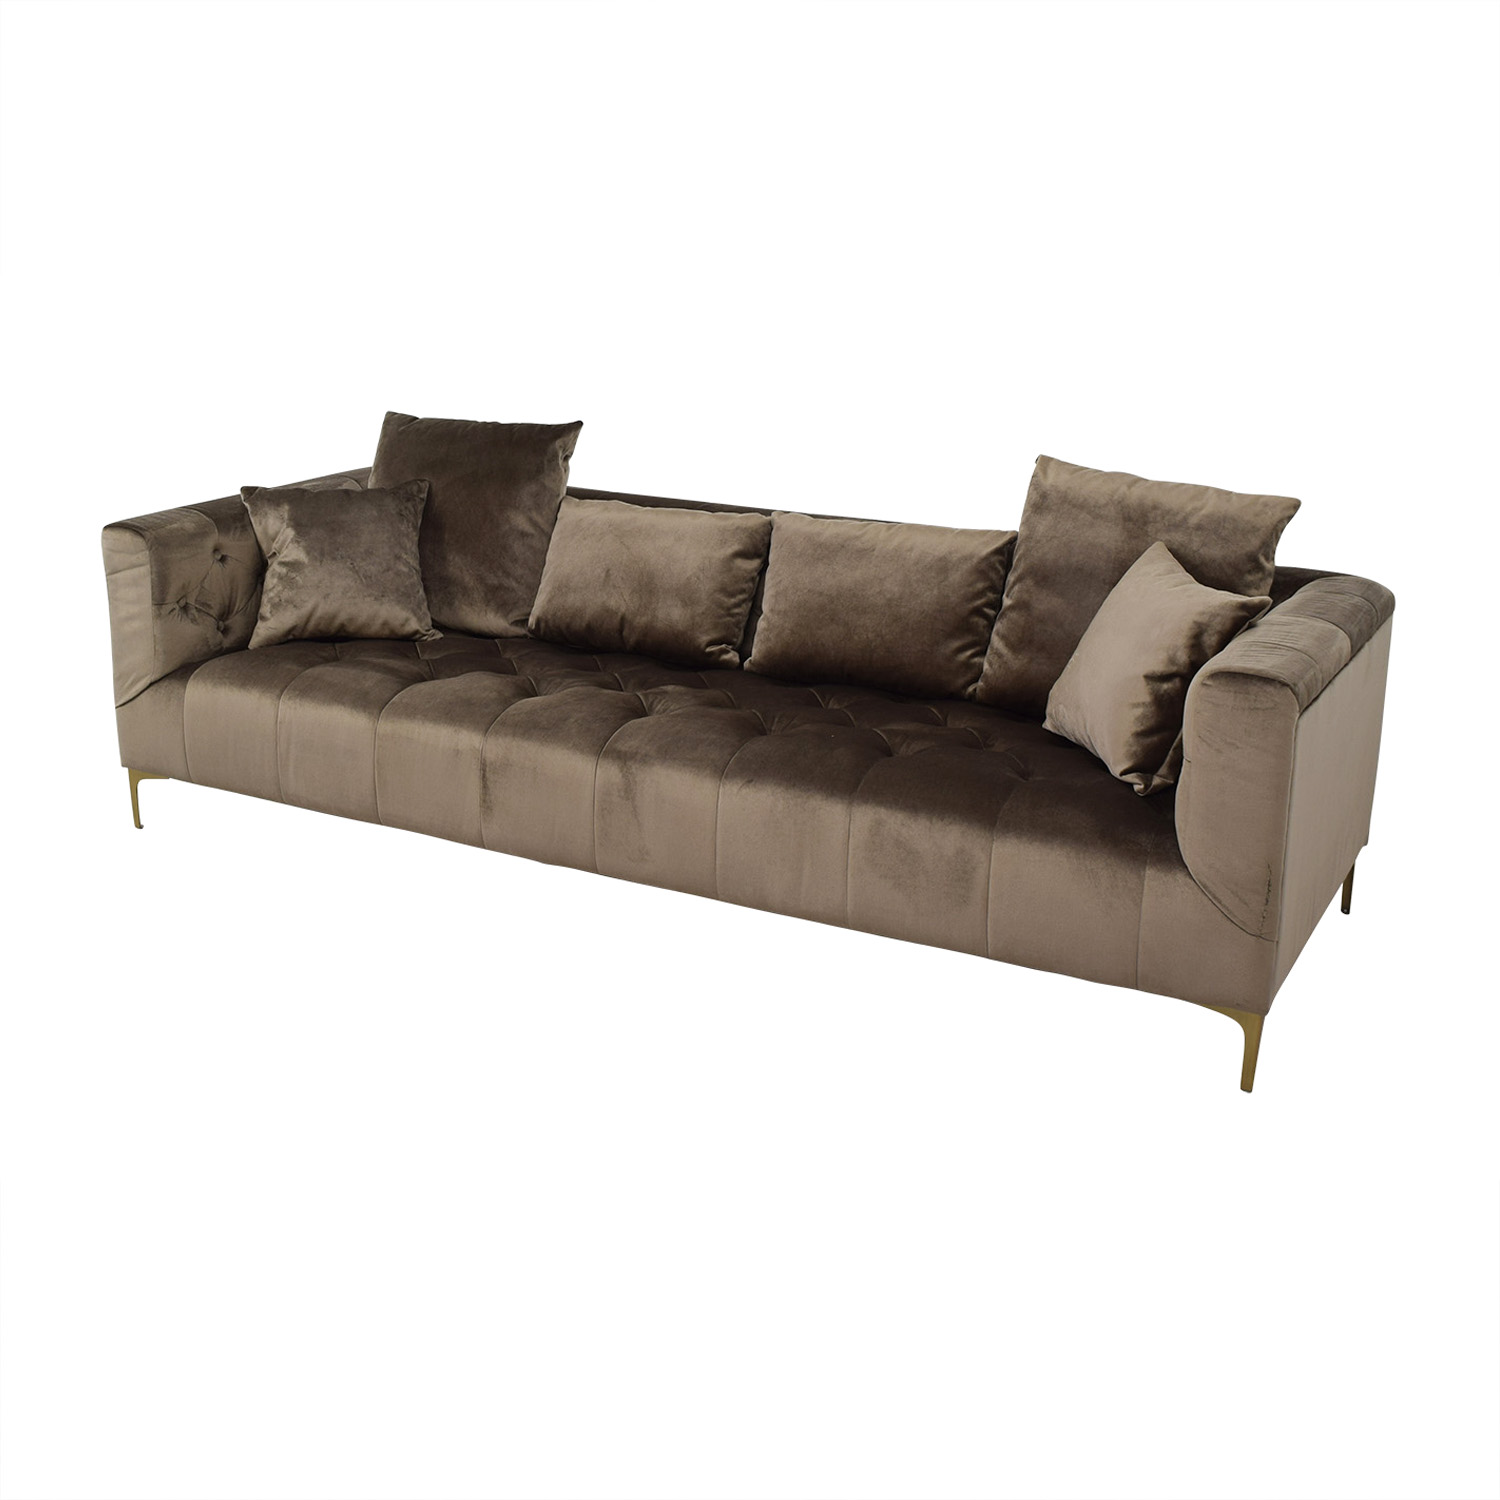 84 Off Ms Chesterfield Light Brown Tufted Sofa Sofas